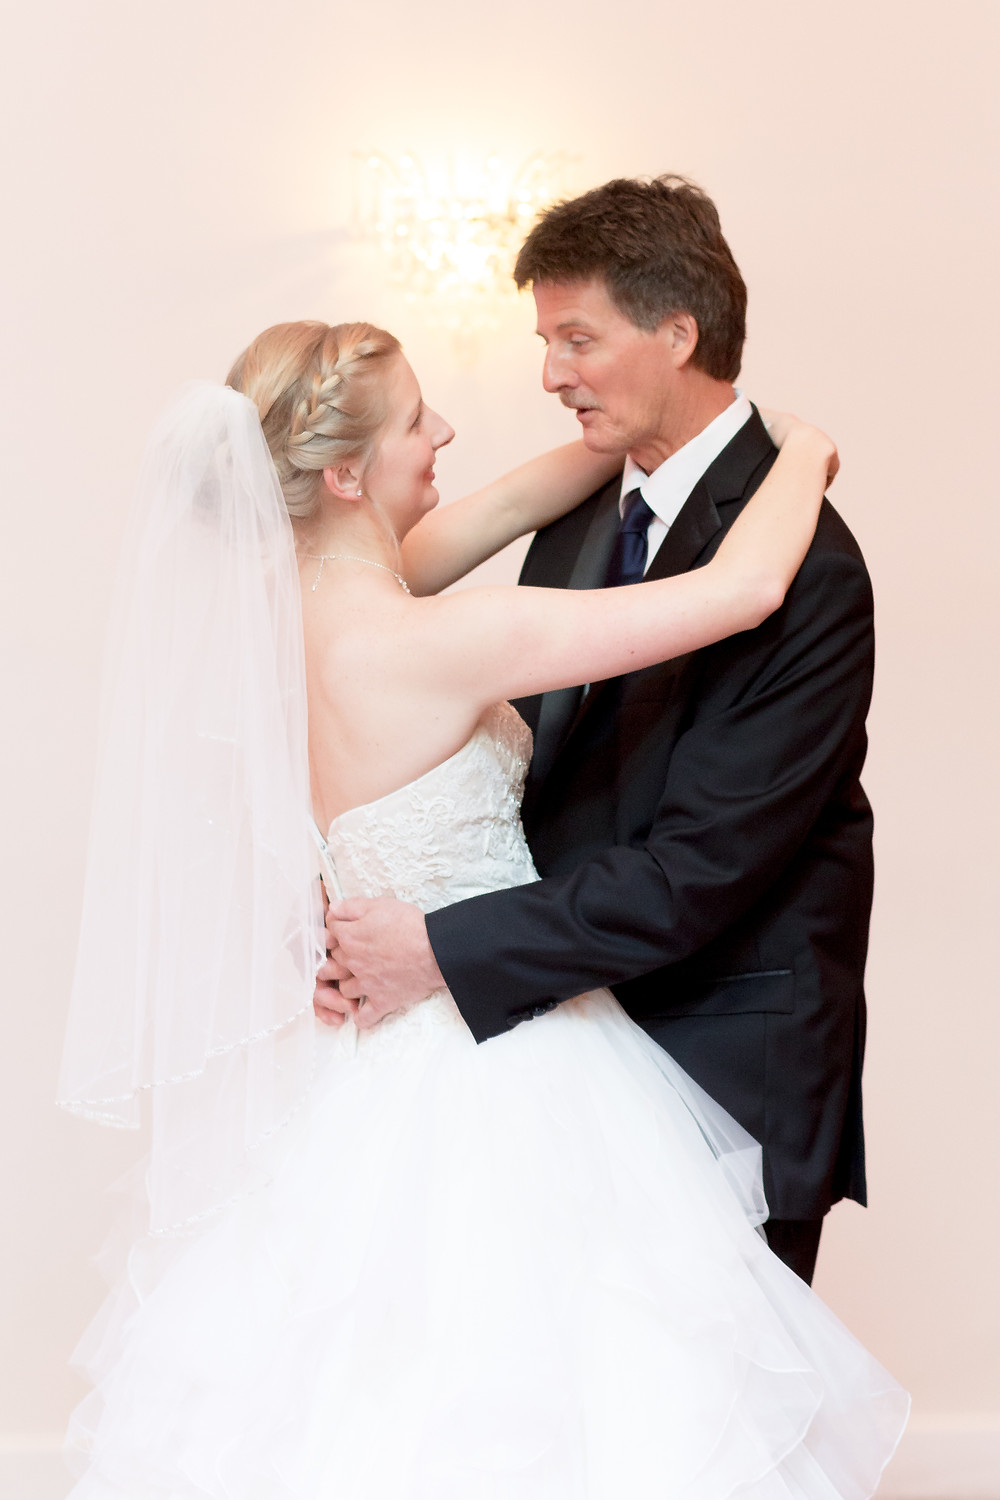 Bride dancing with her father at a wedding in white dress. Father-Daughter Dance Alternatives for Weddings.